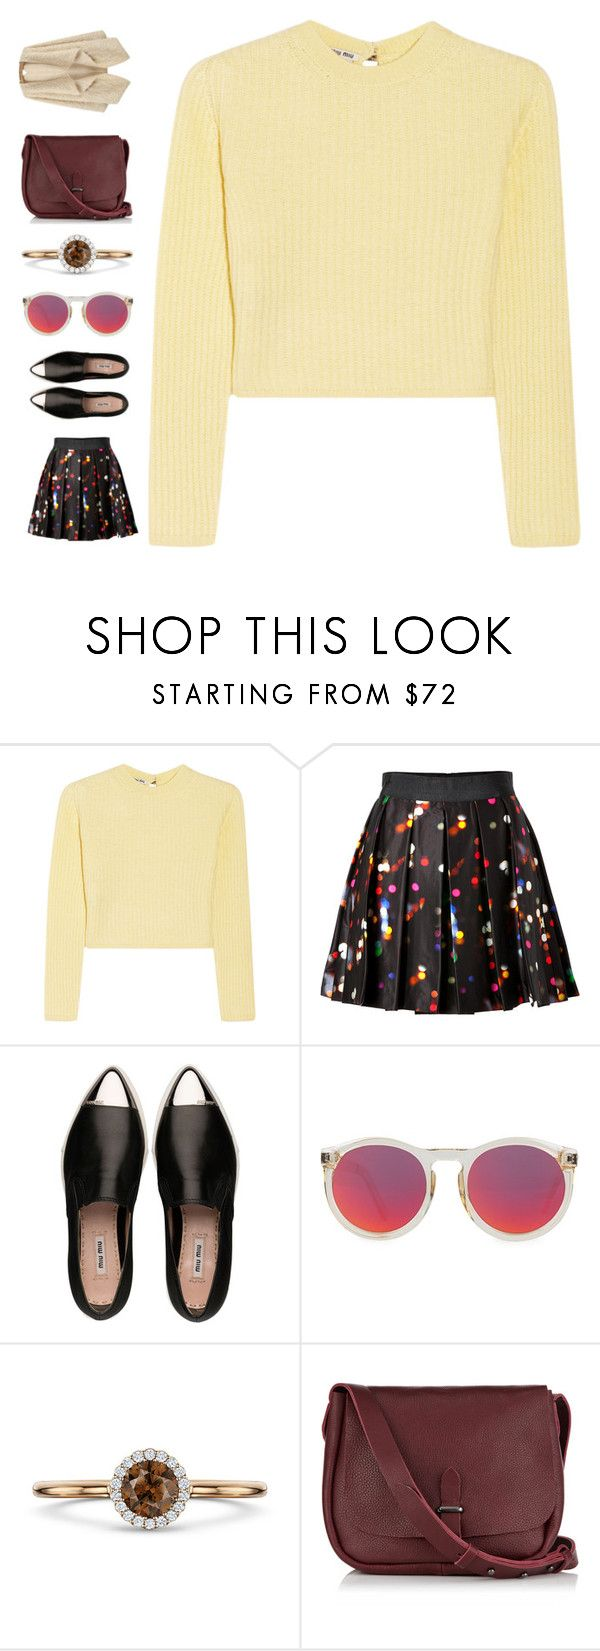 """""""endless love"""" by ouchm4rvel ❤ liked on Polyvore featuring Miu Miu, Milly, Le Specs and Jigsaw"""